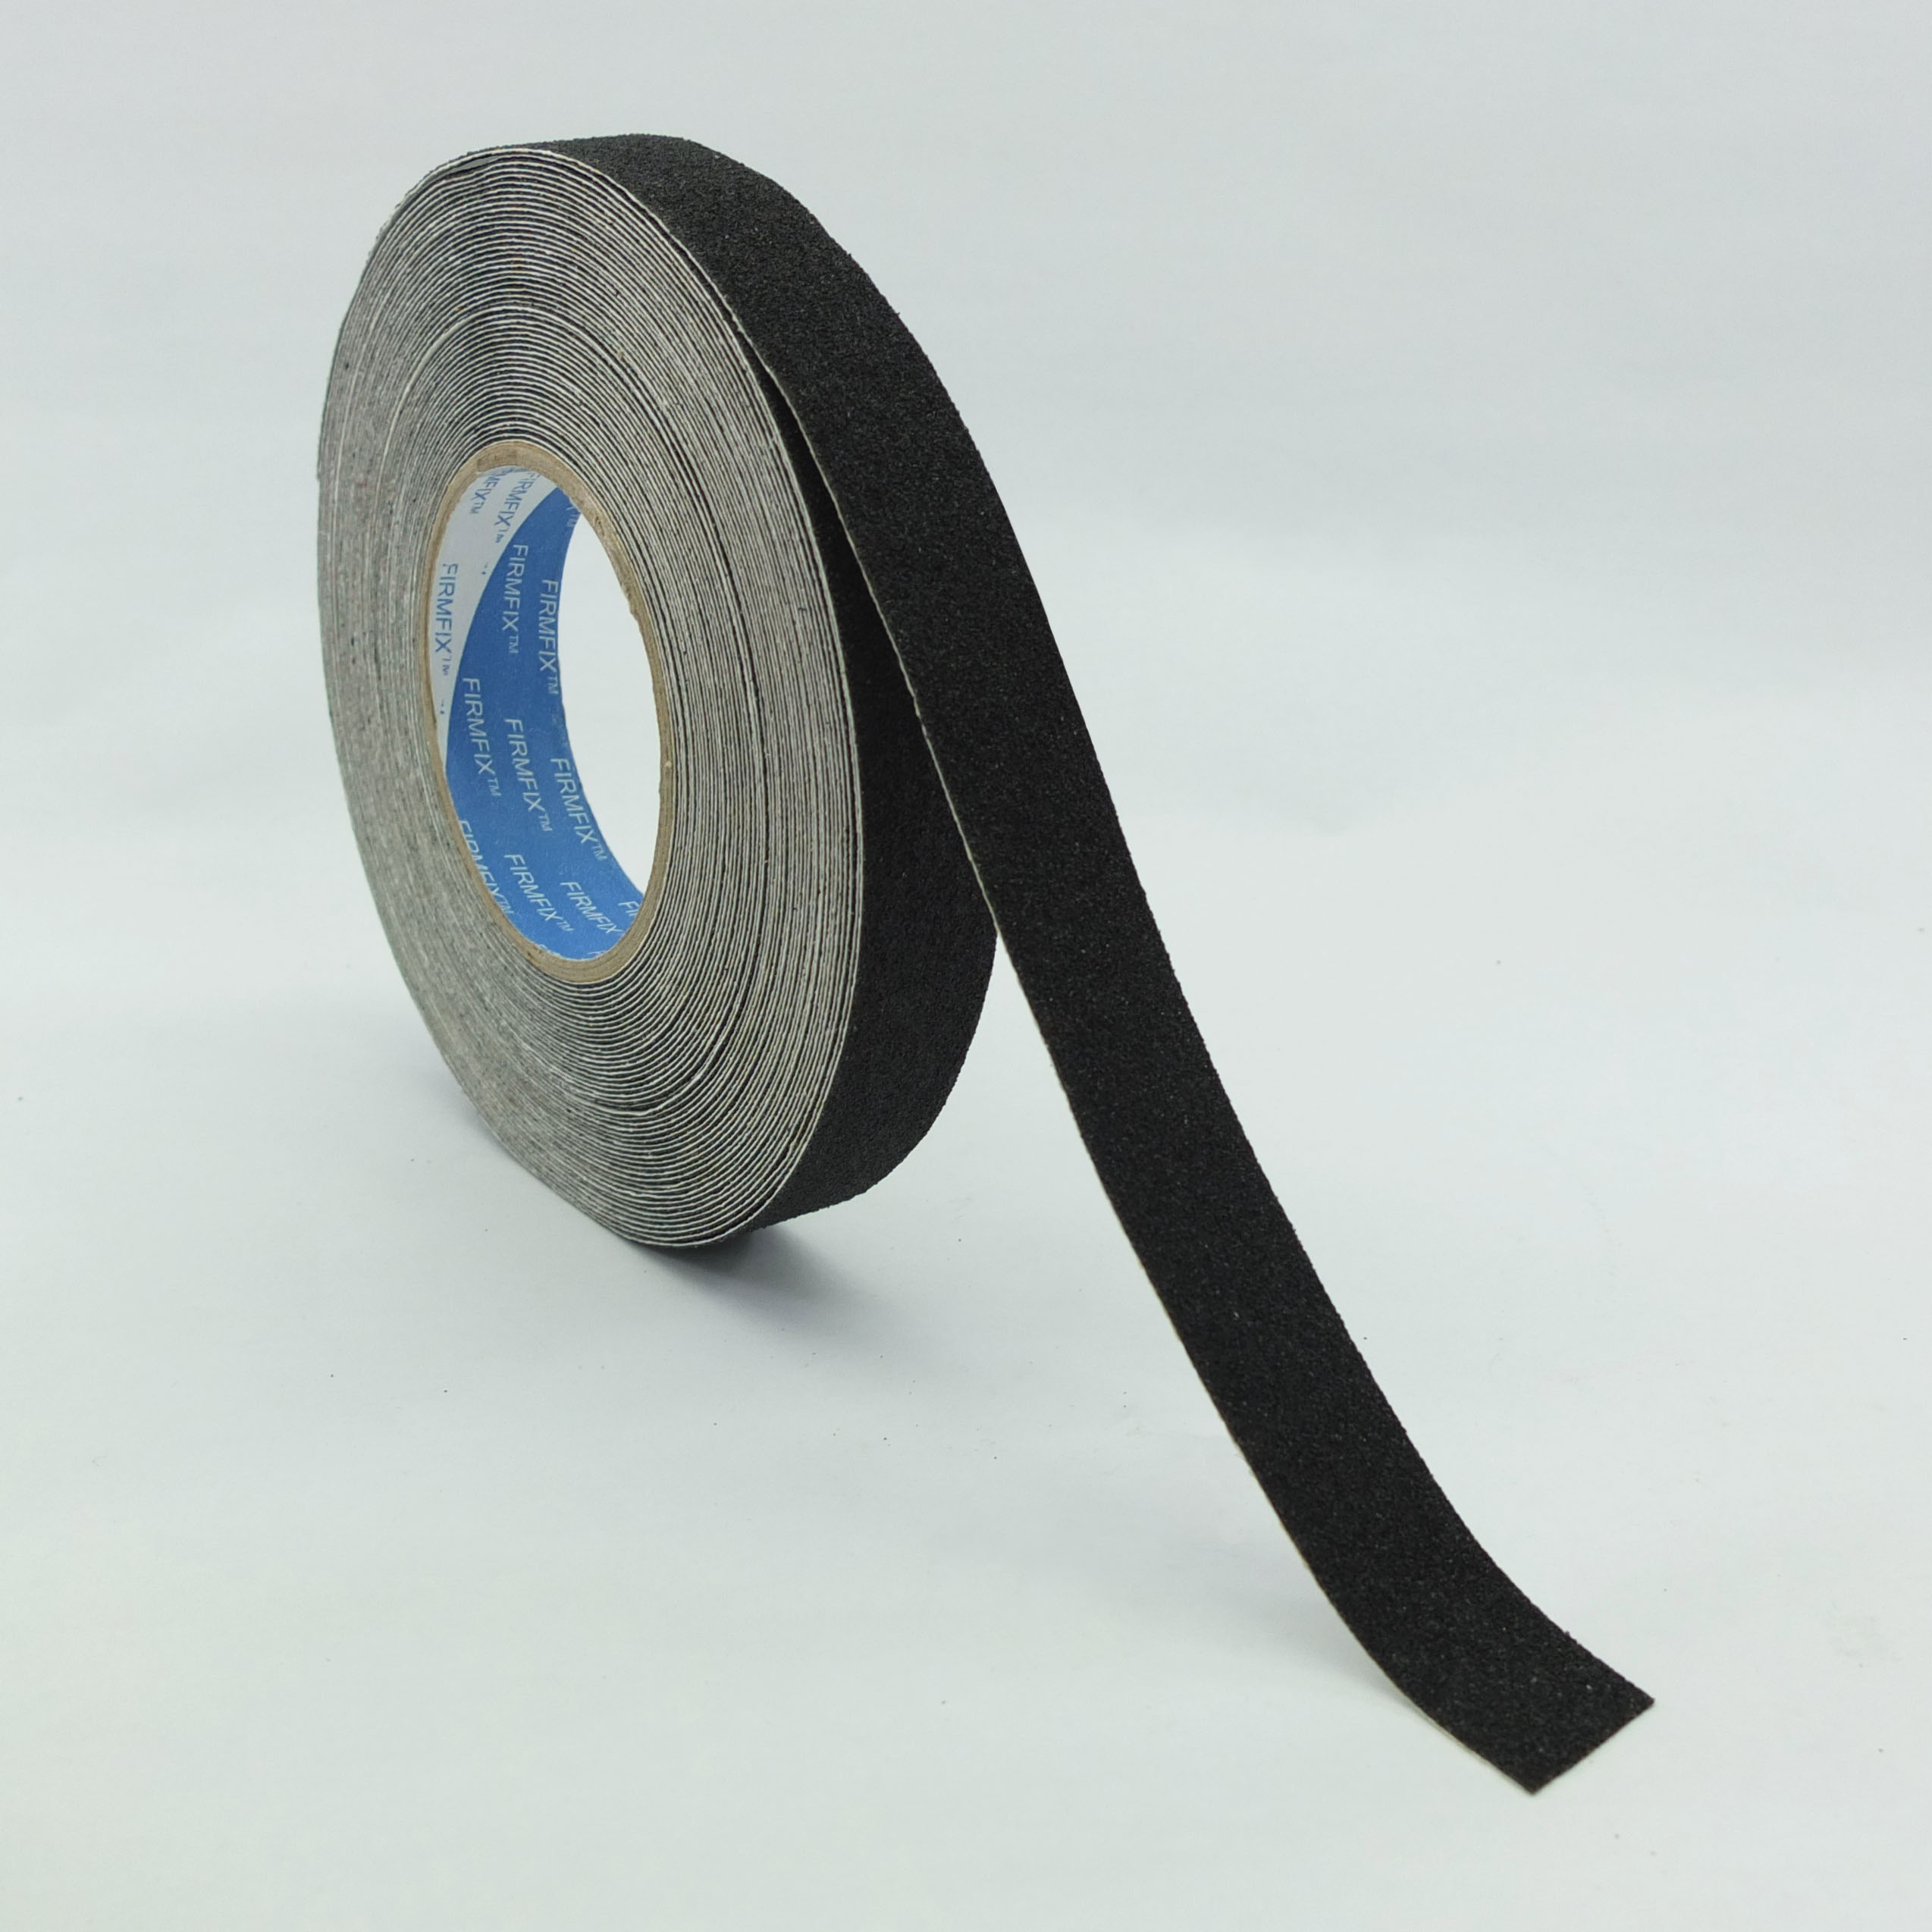 FIRMFIX Anti-slip Tape – Black